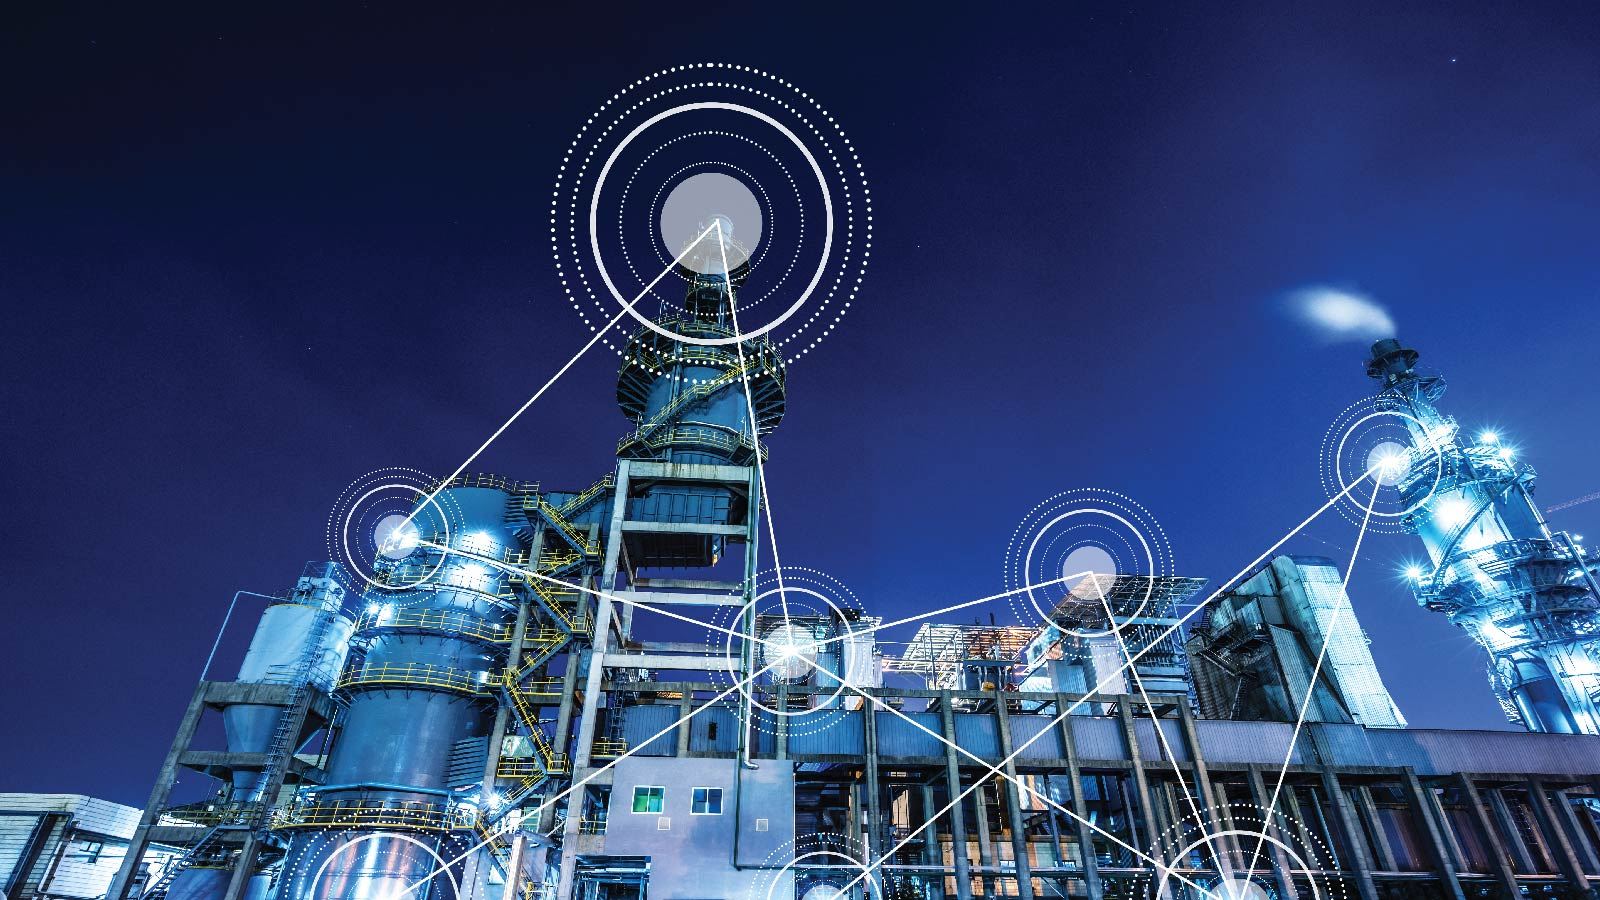 Global Industrial IoT Connections